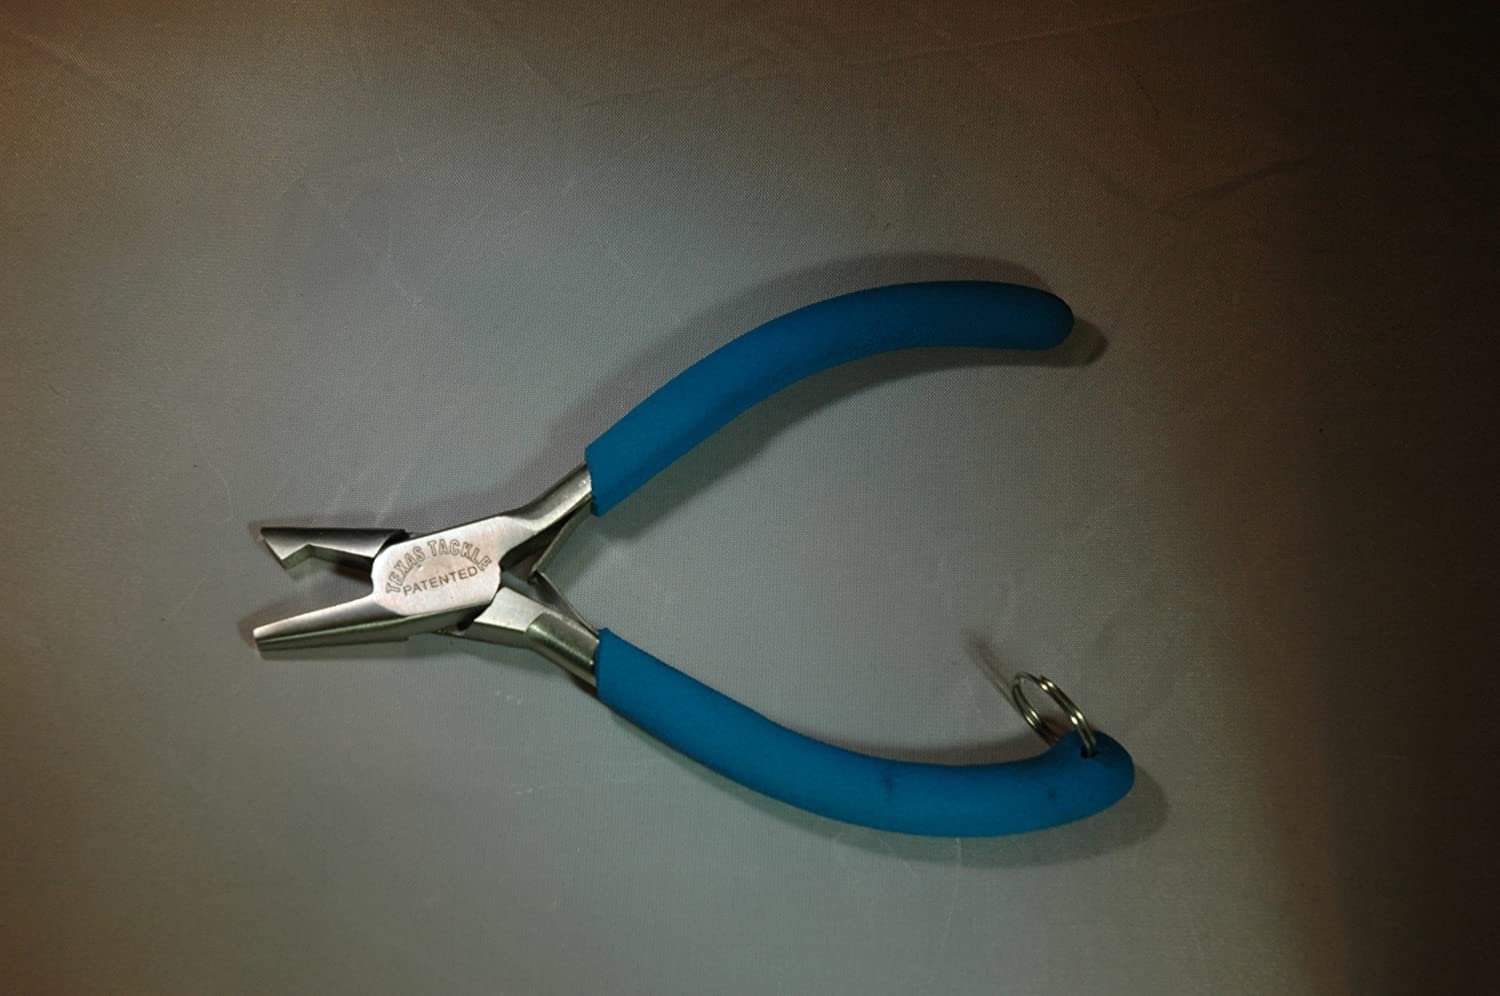 Texas Tackle Split Ring Plier Sr-5Xlhd XL HVY Duty Blue Handle 30103